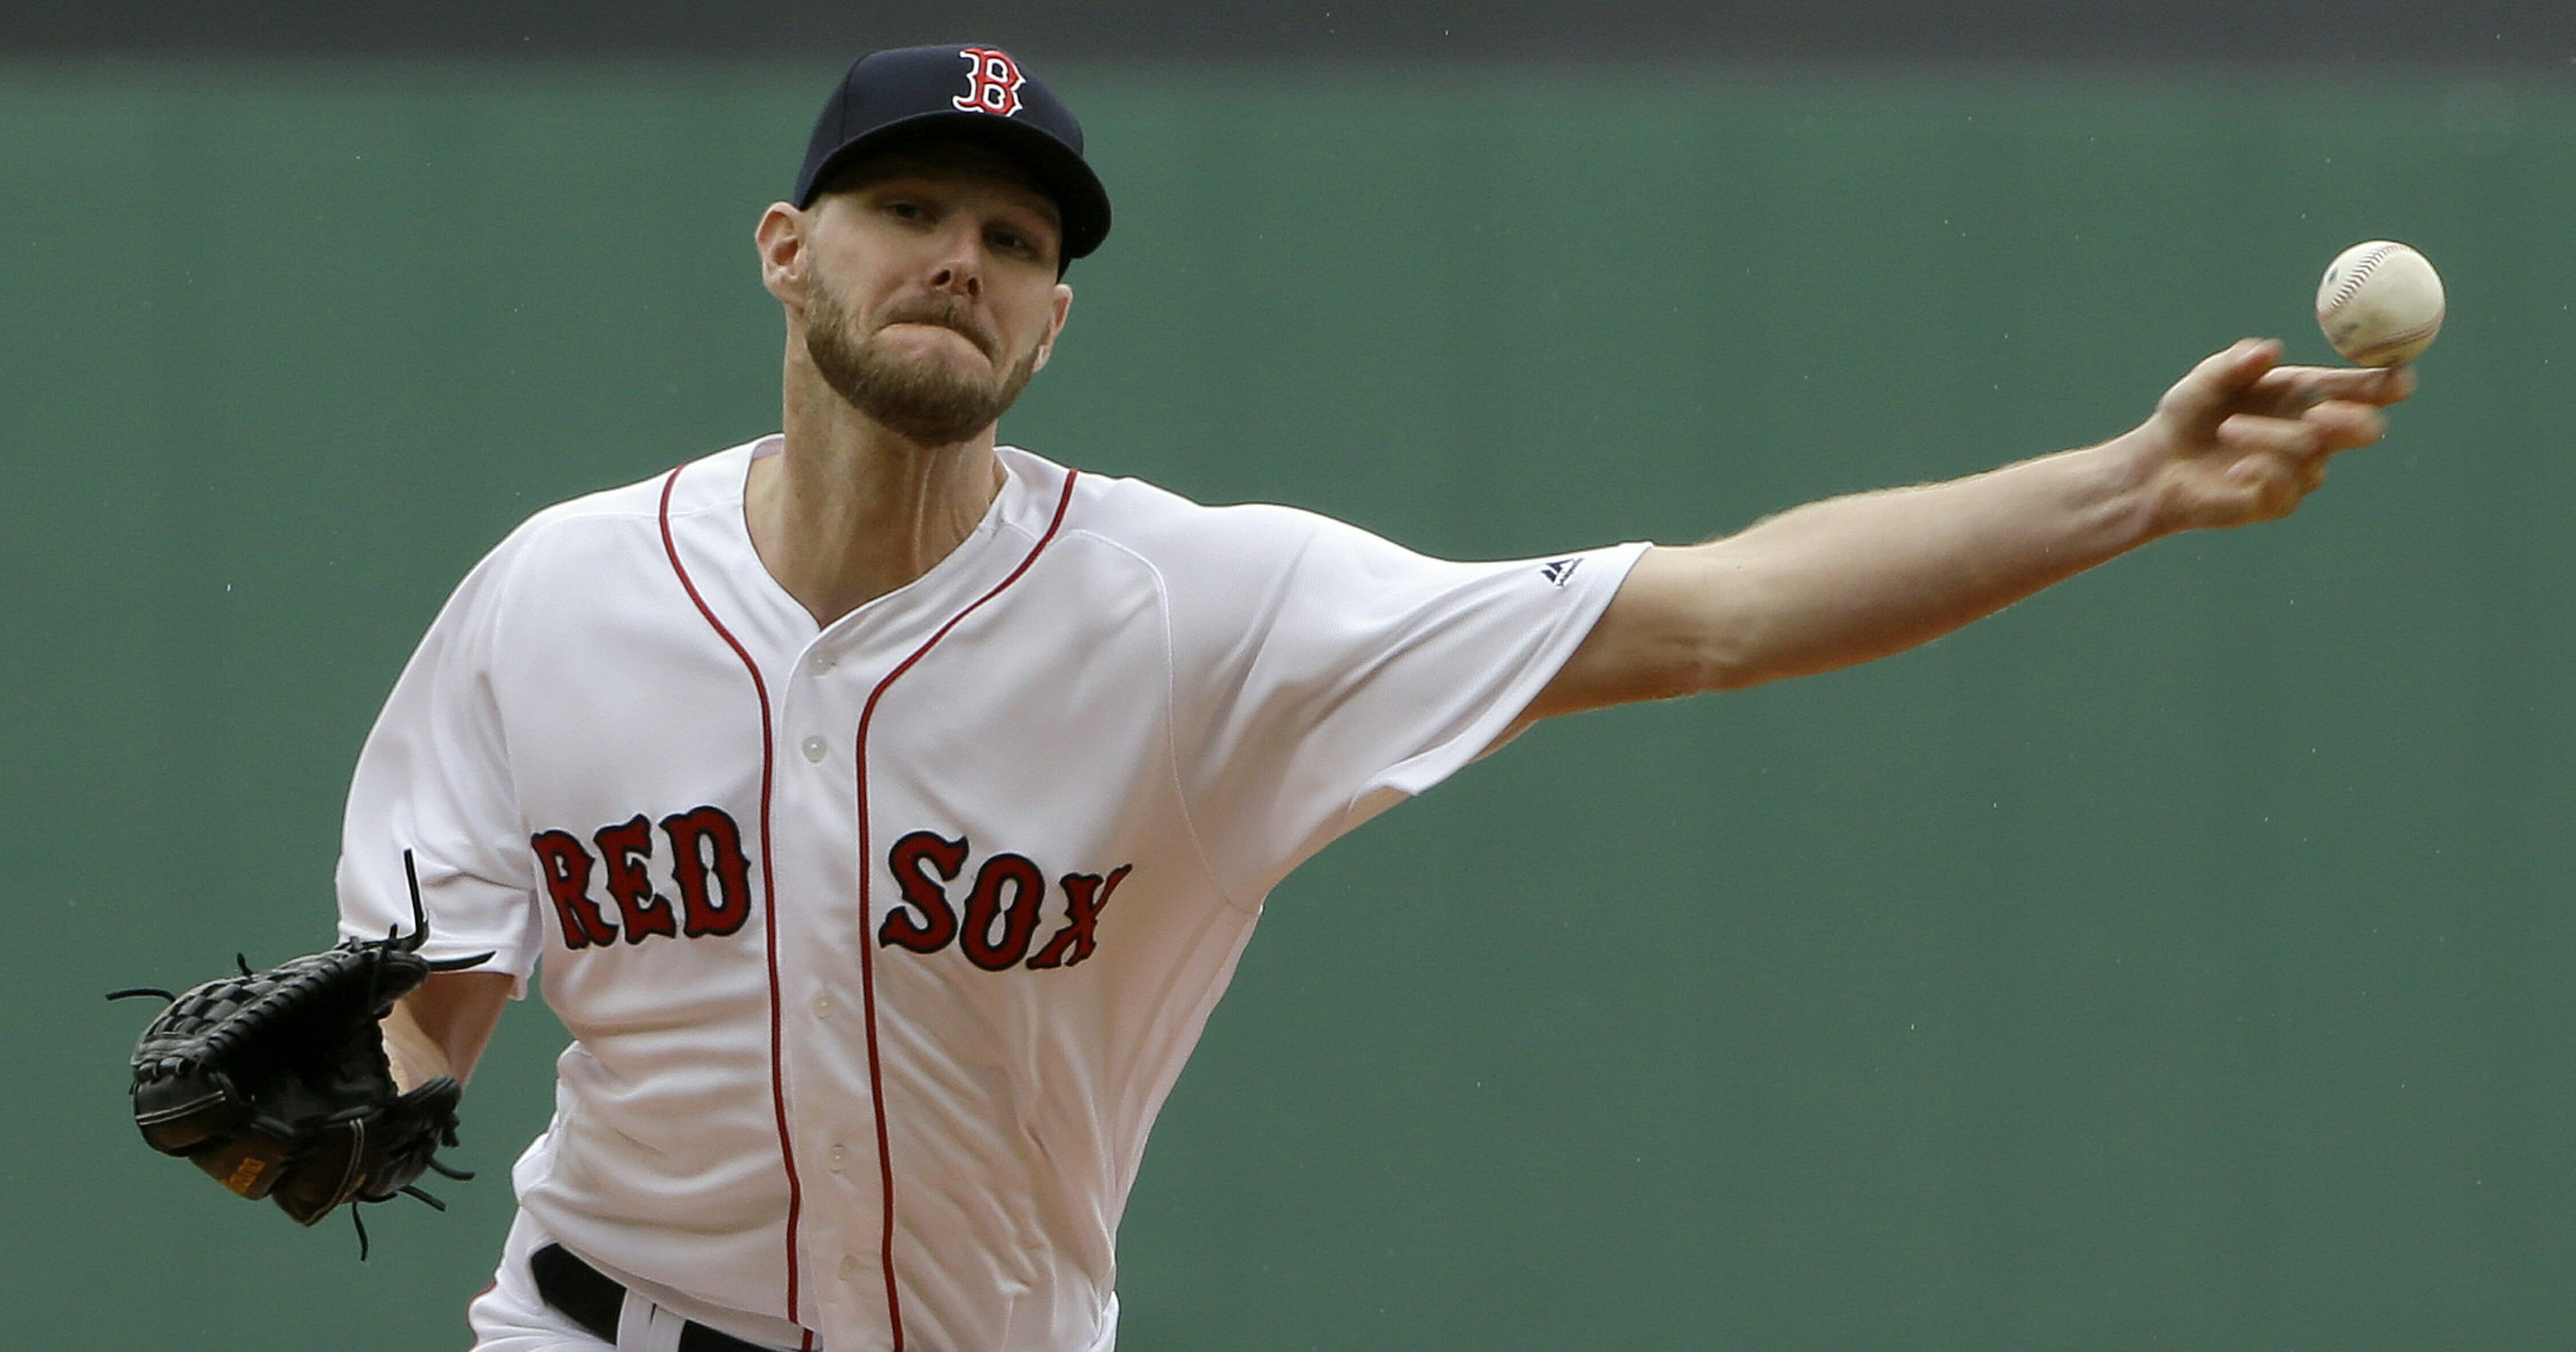 Boston Red Sox's Chris Sale delivers a pitch against the Tampa Bay Rays during the first inning of a baseball game at Fenway Park, Sunday, April 28, 2019, in Boston.